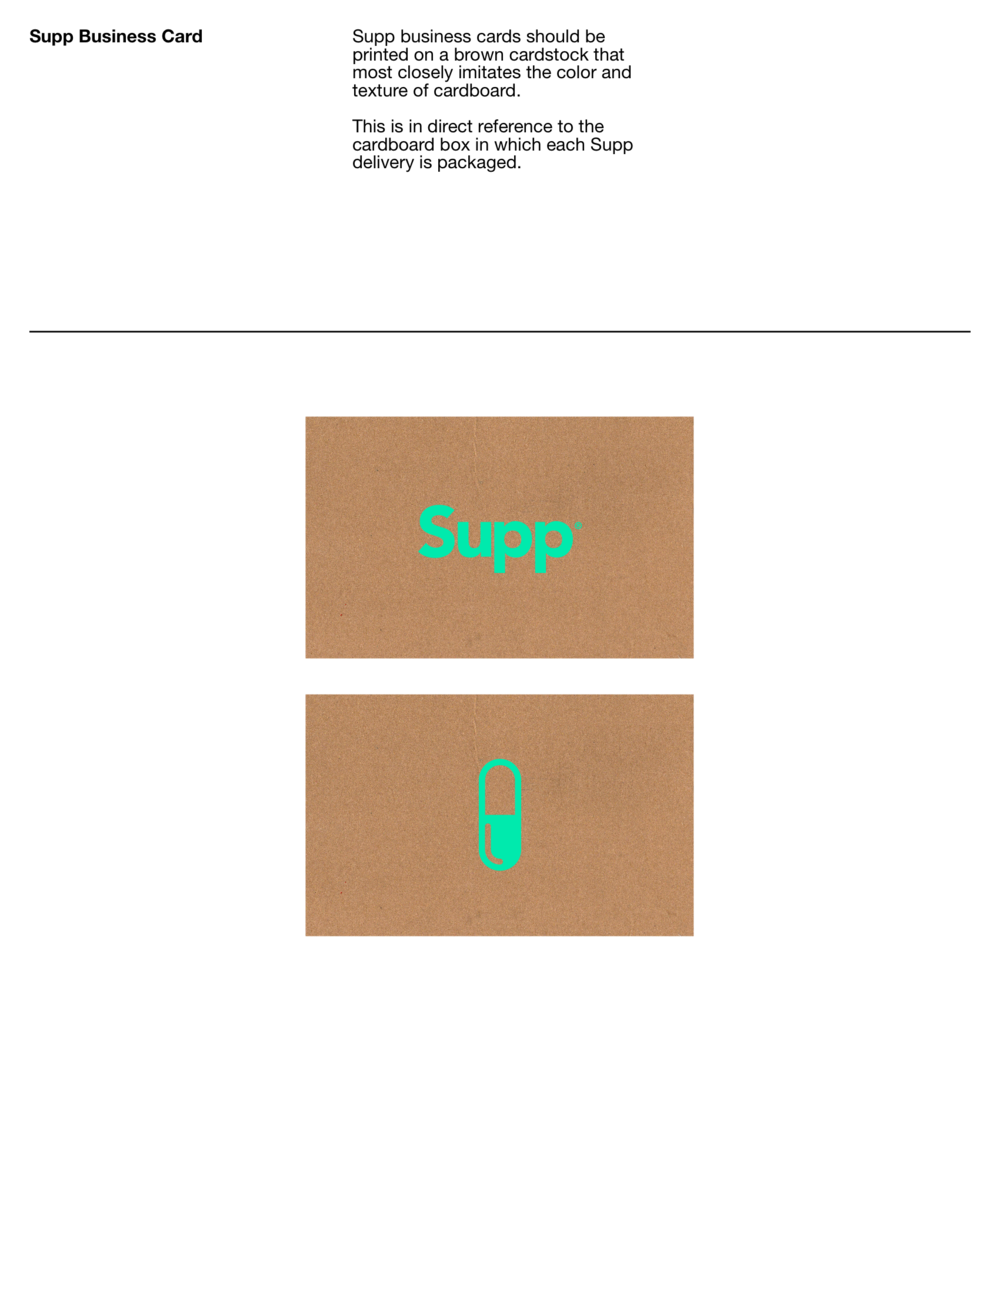 Supp Style Guide_FINAL 9.png